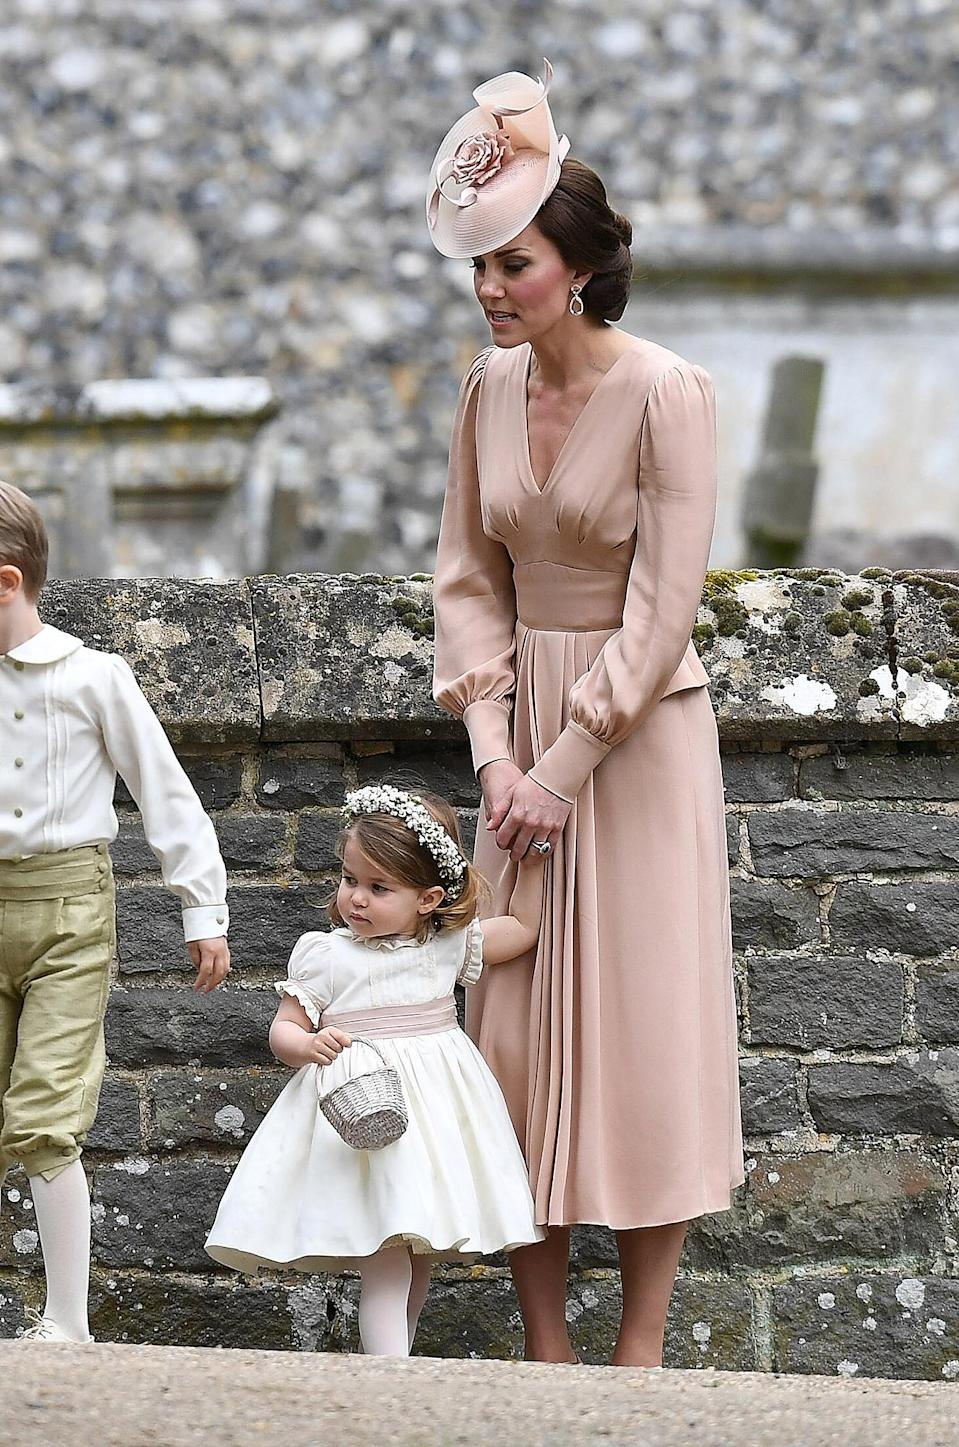 """<p><strong>When:</strong> May 20, 2017 <strong>Where:</strong> Sister <a href=""""http://people.com/royals/how-to-get-pippa-middletons-stylish-and-sometimes-sporty-wardrobe"""" rel=""""nofollow noopener"""" target=""""_blank"""" data-ylk=""""slk:Pippa Middleton"""" class=""""link rapid-noclick-resp"""">Pippa Middleton</a>'s wedding at St. Mark's Church in Englefield, England <strong>Wearing:</strong> Alexander McQueen <strong>Get the Look:</strong> Eliza J Bow-Detail Dress, $138; <a href=""""https://click.linksynergy.com/fs-bin/click?id=93xLBvPhAeE&subid=0&offerid=390098.1&type=10&tmpid=8157&RD_PARM1=https%253A%252F%252Fshop.nordstrom.com%252Fs%252Feliza-j-bell-sleeve-sheath-dress-regular-petite%252F4855761%253Fcontextualcategoryid%253D2375500%2526origin%253Dkeywordsearch%2526keyword%253DBell%252BSleeve%252BSheath%252BDress%2526top%253D72%2526color%253D%252527Pink%252527&u1=POROYALSKateSpringStyleMM"""" rel=""""nofollow noopener"""" target=""""_blank"""" data-ylk=""""slk:nordstrom.com"""" class=""""link rapid-noclick-resp"""">nordstrom.com</a> Calvin Klein Bell-Sleeve Sheath Dress, $90; <a href=""""https://click.linksynergy.com/fs-bin/click?id=93xLBvPhAeE&subid=0&offerid=486467.1&type=10&tmpid=1513&RD_PARM1=https%3A%2F%2Fwww.macys.com%2Fshop%2Fproduct%2Fcalvin-klein-bell-sleeve-sheath-dress%3FID%3D4382498%2526CategoryID%3D5449%2526swatchColor%3DBlush&u1=POROYALSKateSpringStyleMM"""" rel=""""nofollow noopener"""" target=""""_blank"""" data-ylk=""""slk:macys.com"""" class=""""link rapid-noclick-resp"""">macys.com</a></p>"""